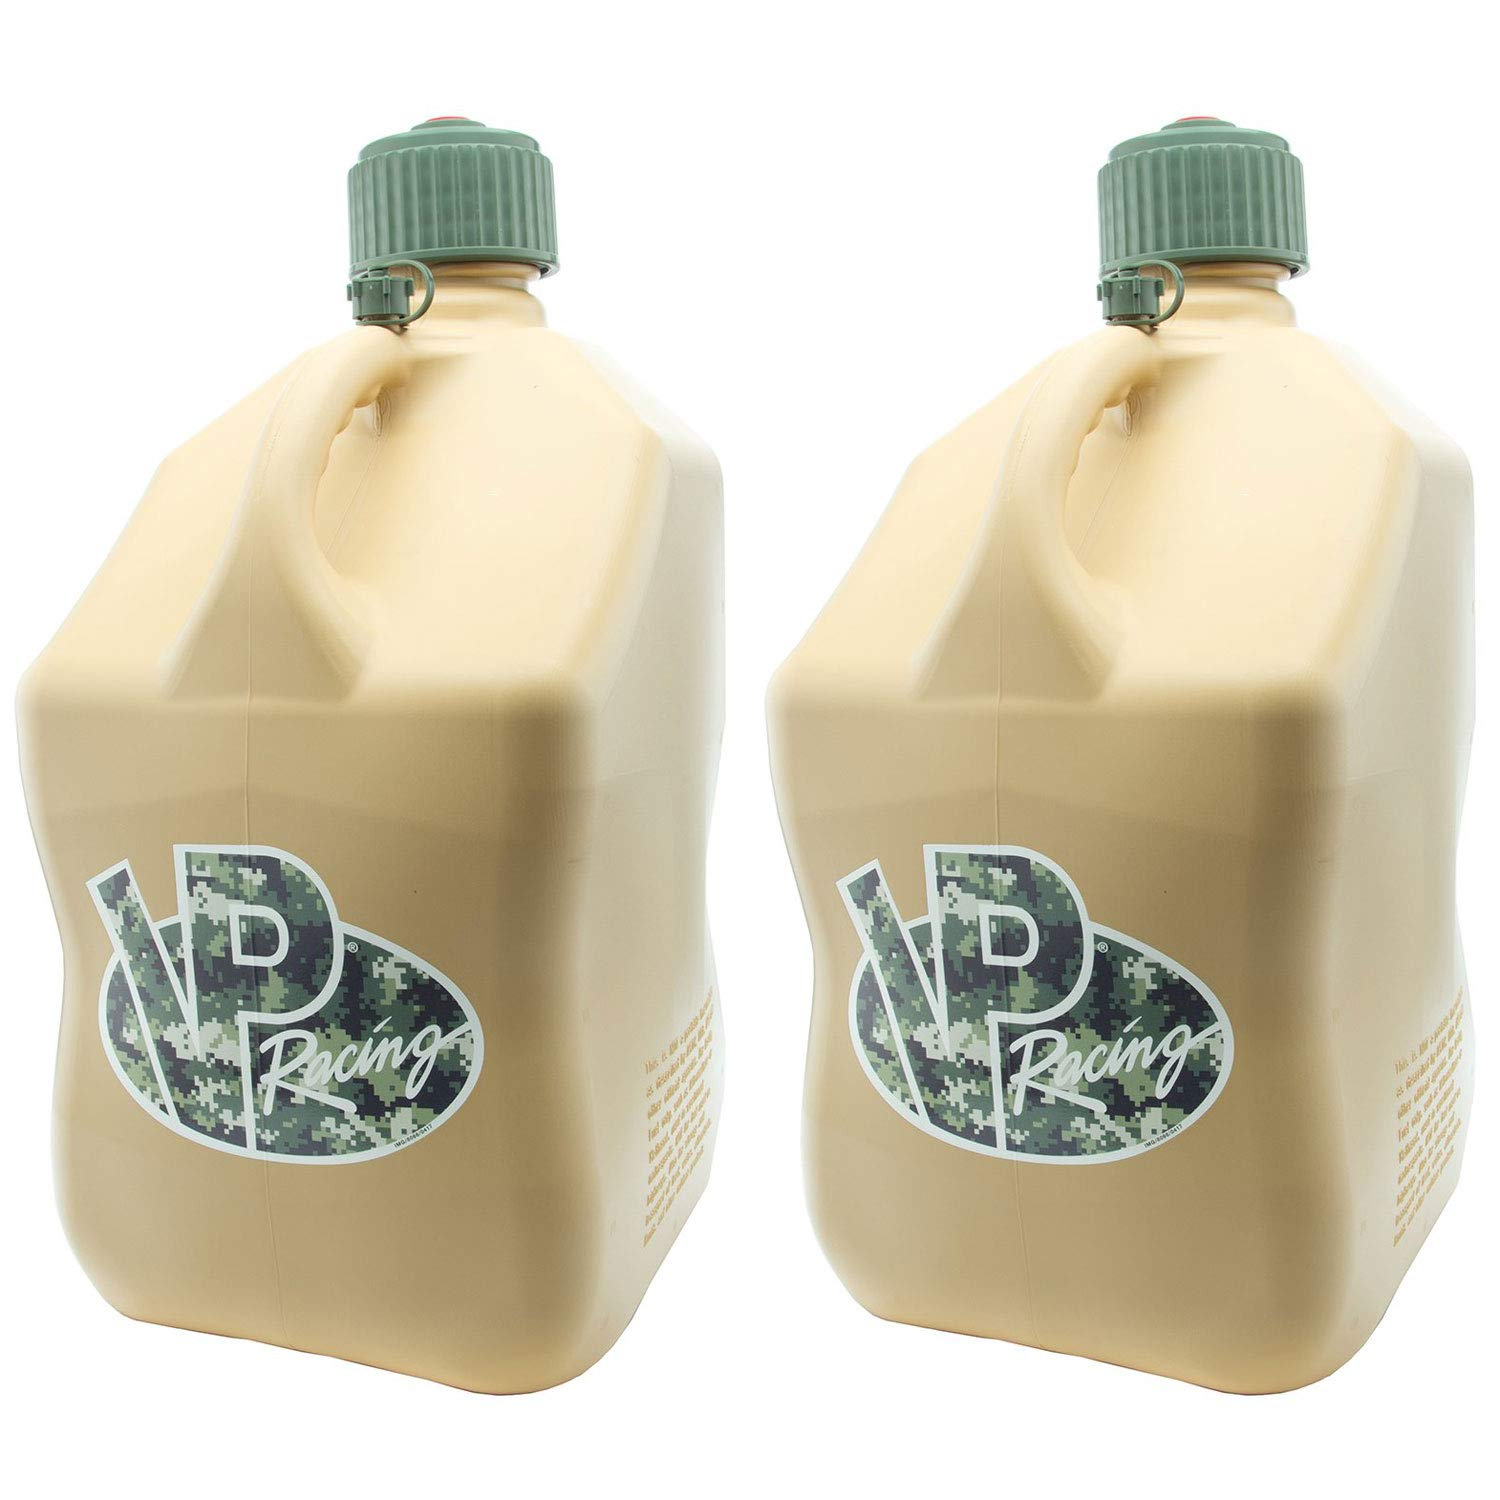 VP Racing 5 Gallon Motorsport Racing Fuel Container Jug Gas Can, Tan (2 Pack) by VP Fuels